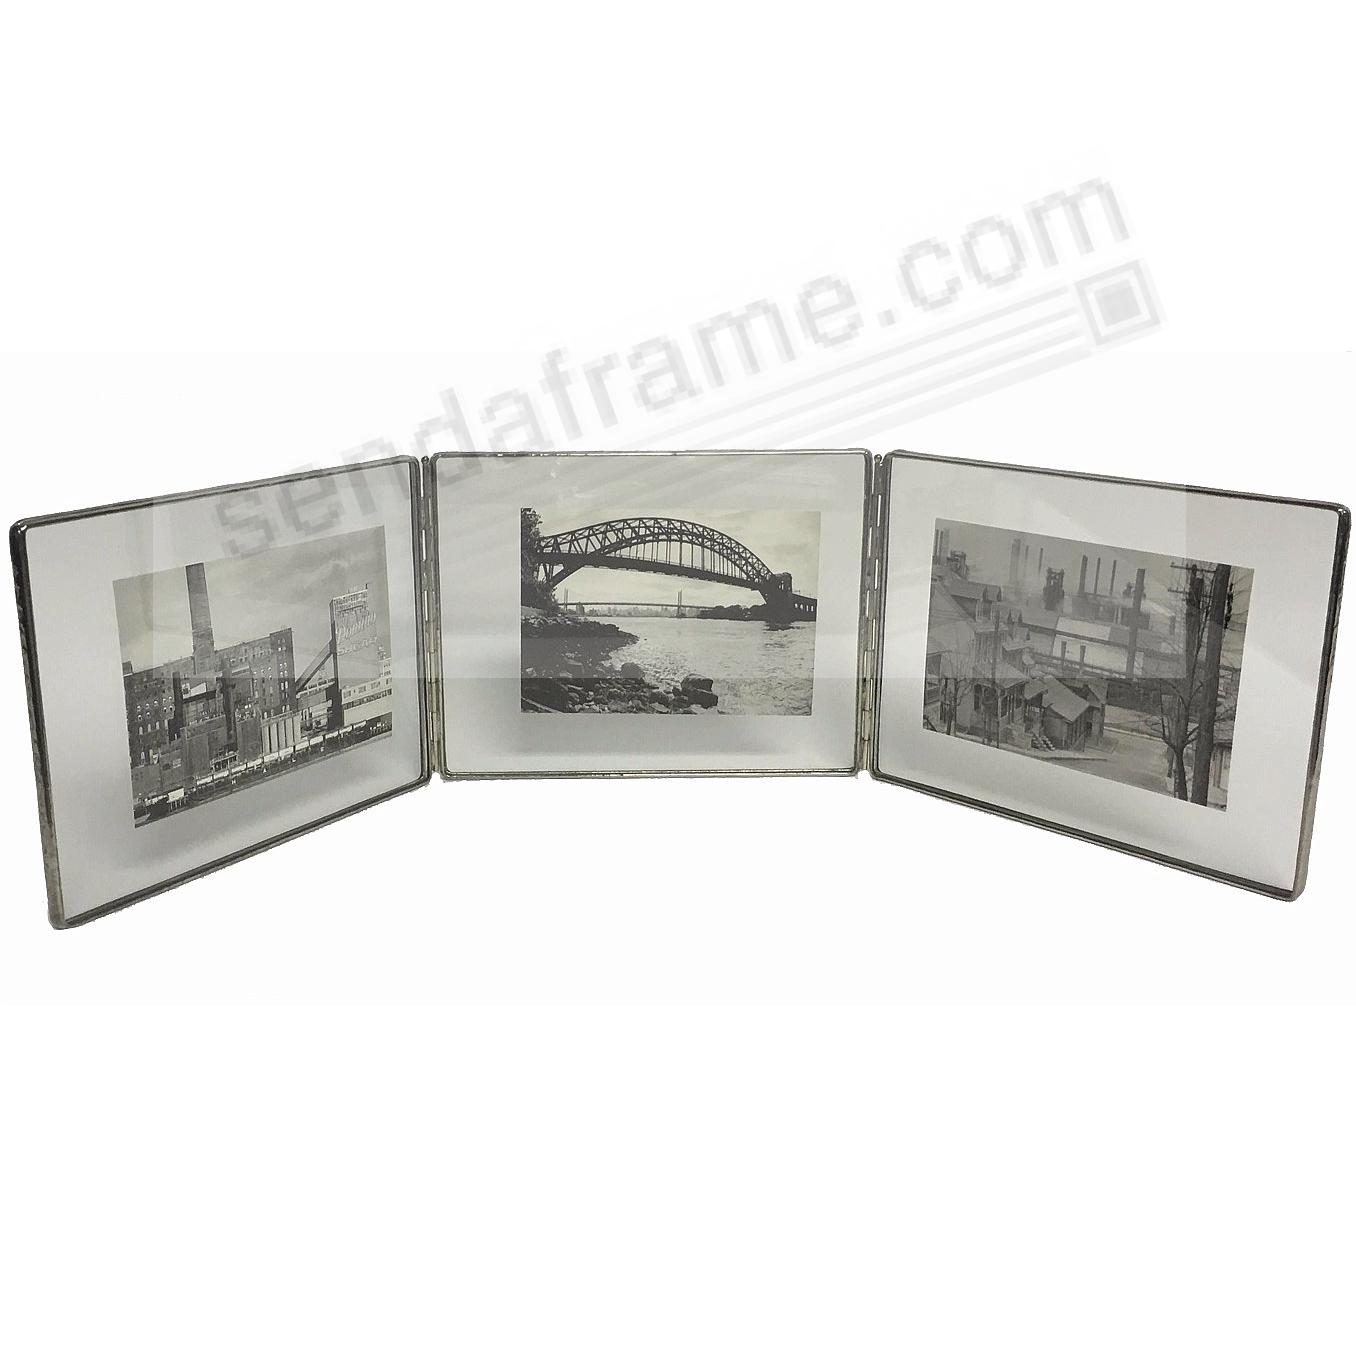 SILVER + Clear Glass Float Frame 7x5½/6x4 Horiz Hinged Triple by Bedford Downing®